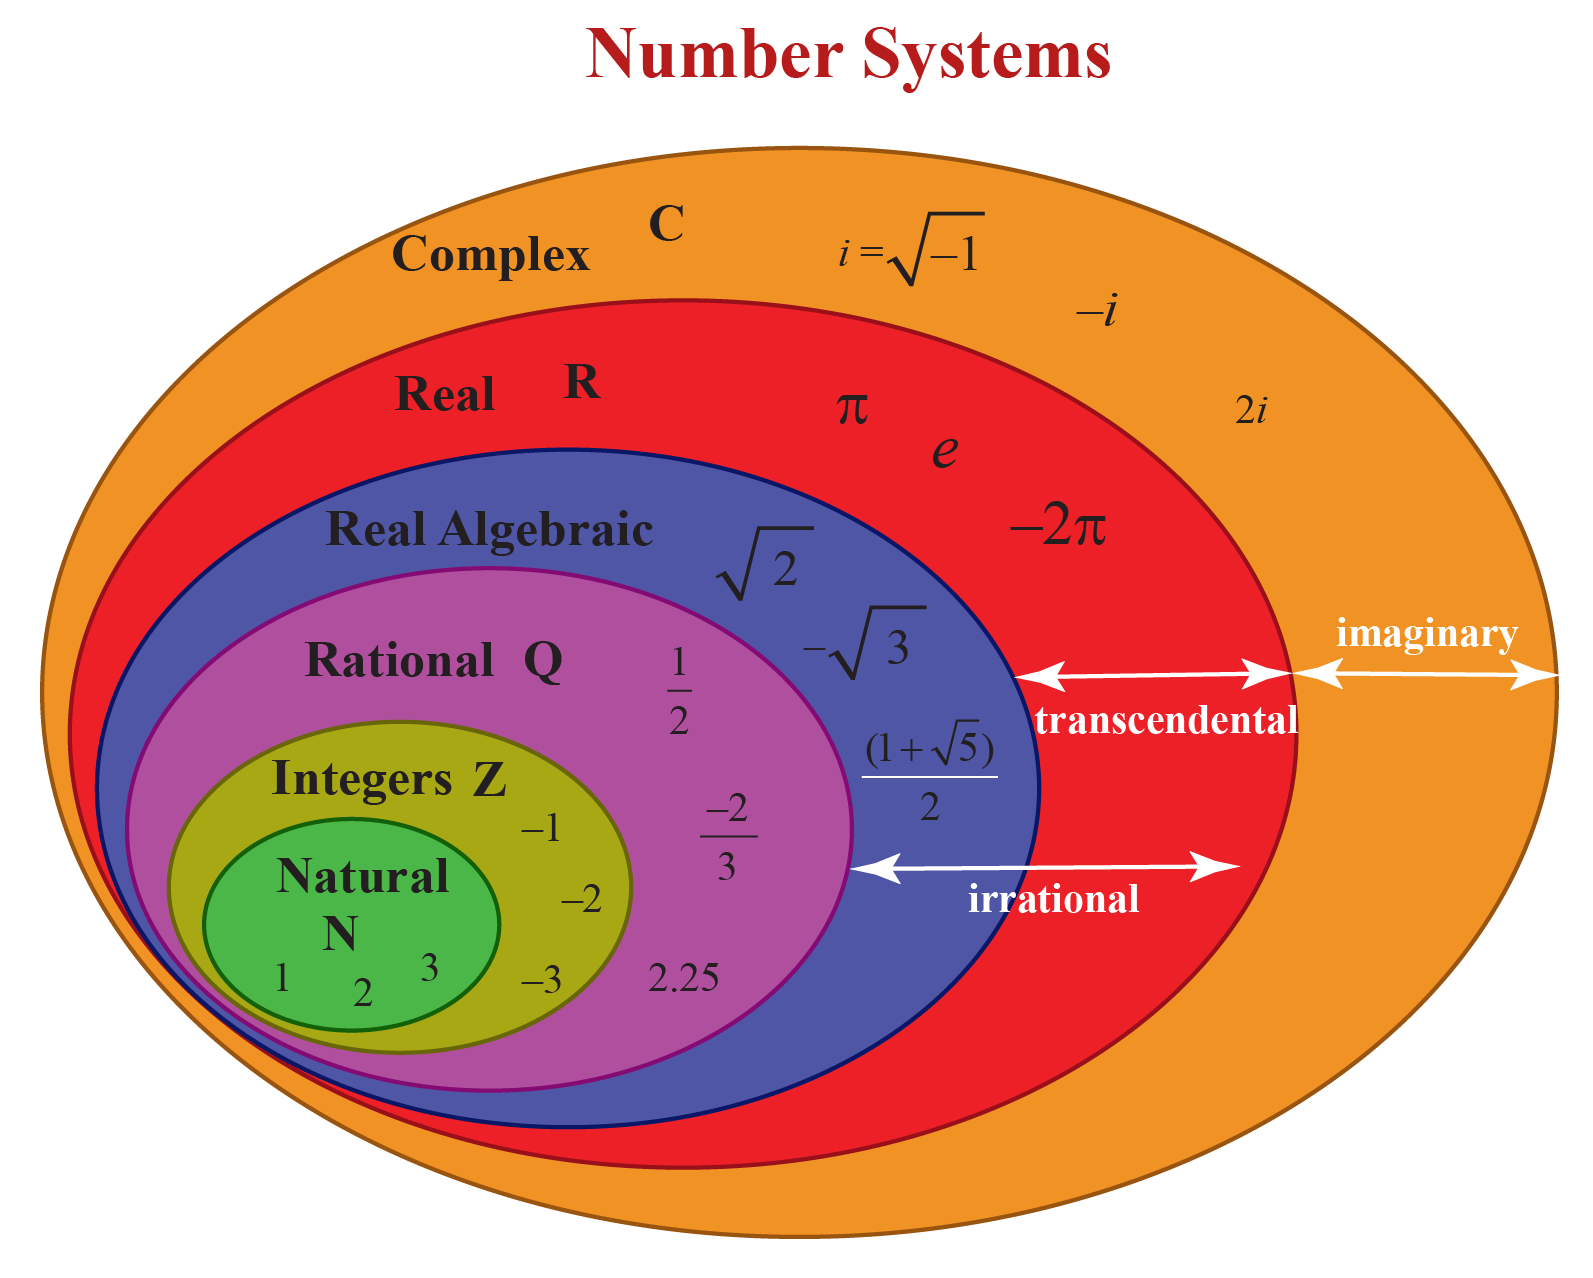 The Number system Venn diagram shows how integers, rational numbers, irrational numbers, and so on form part of the universal set.